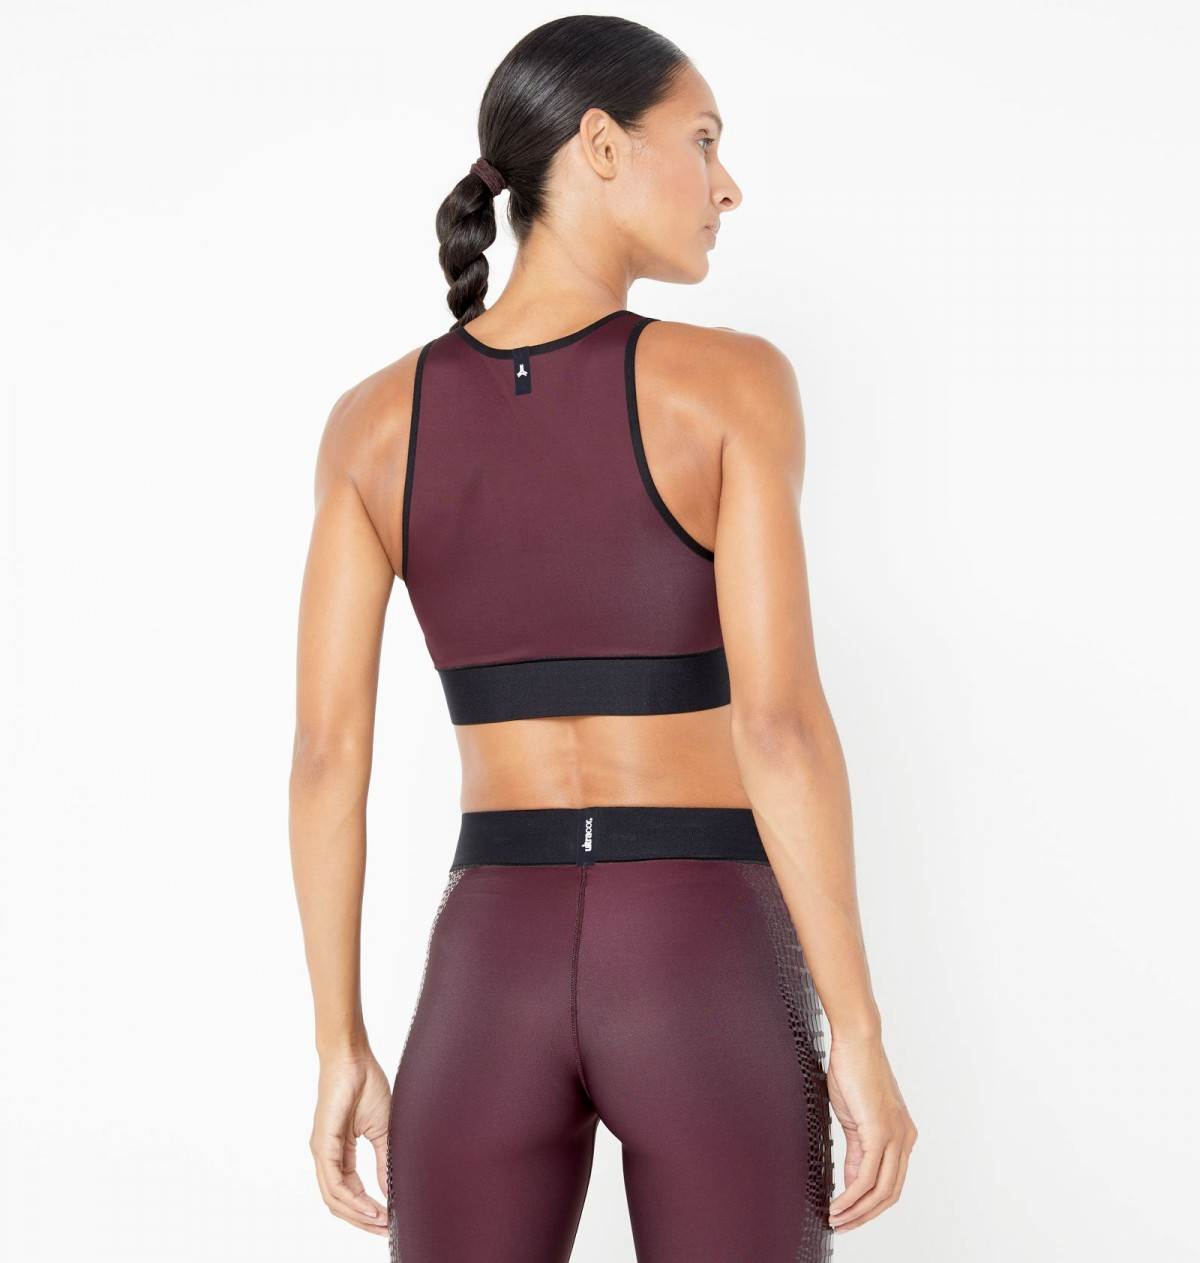 Garnet and Transparent Lucido Altitude Crocodile Crop Top